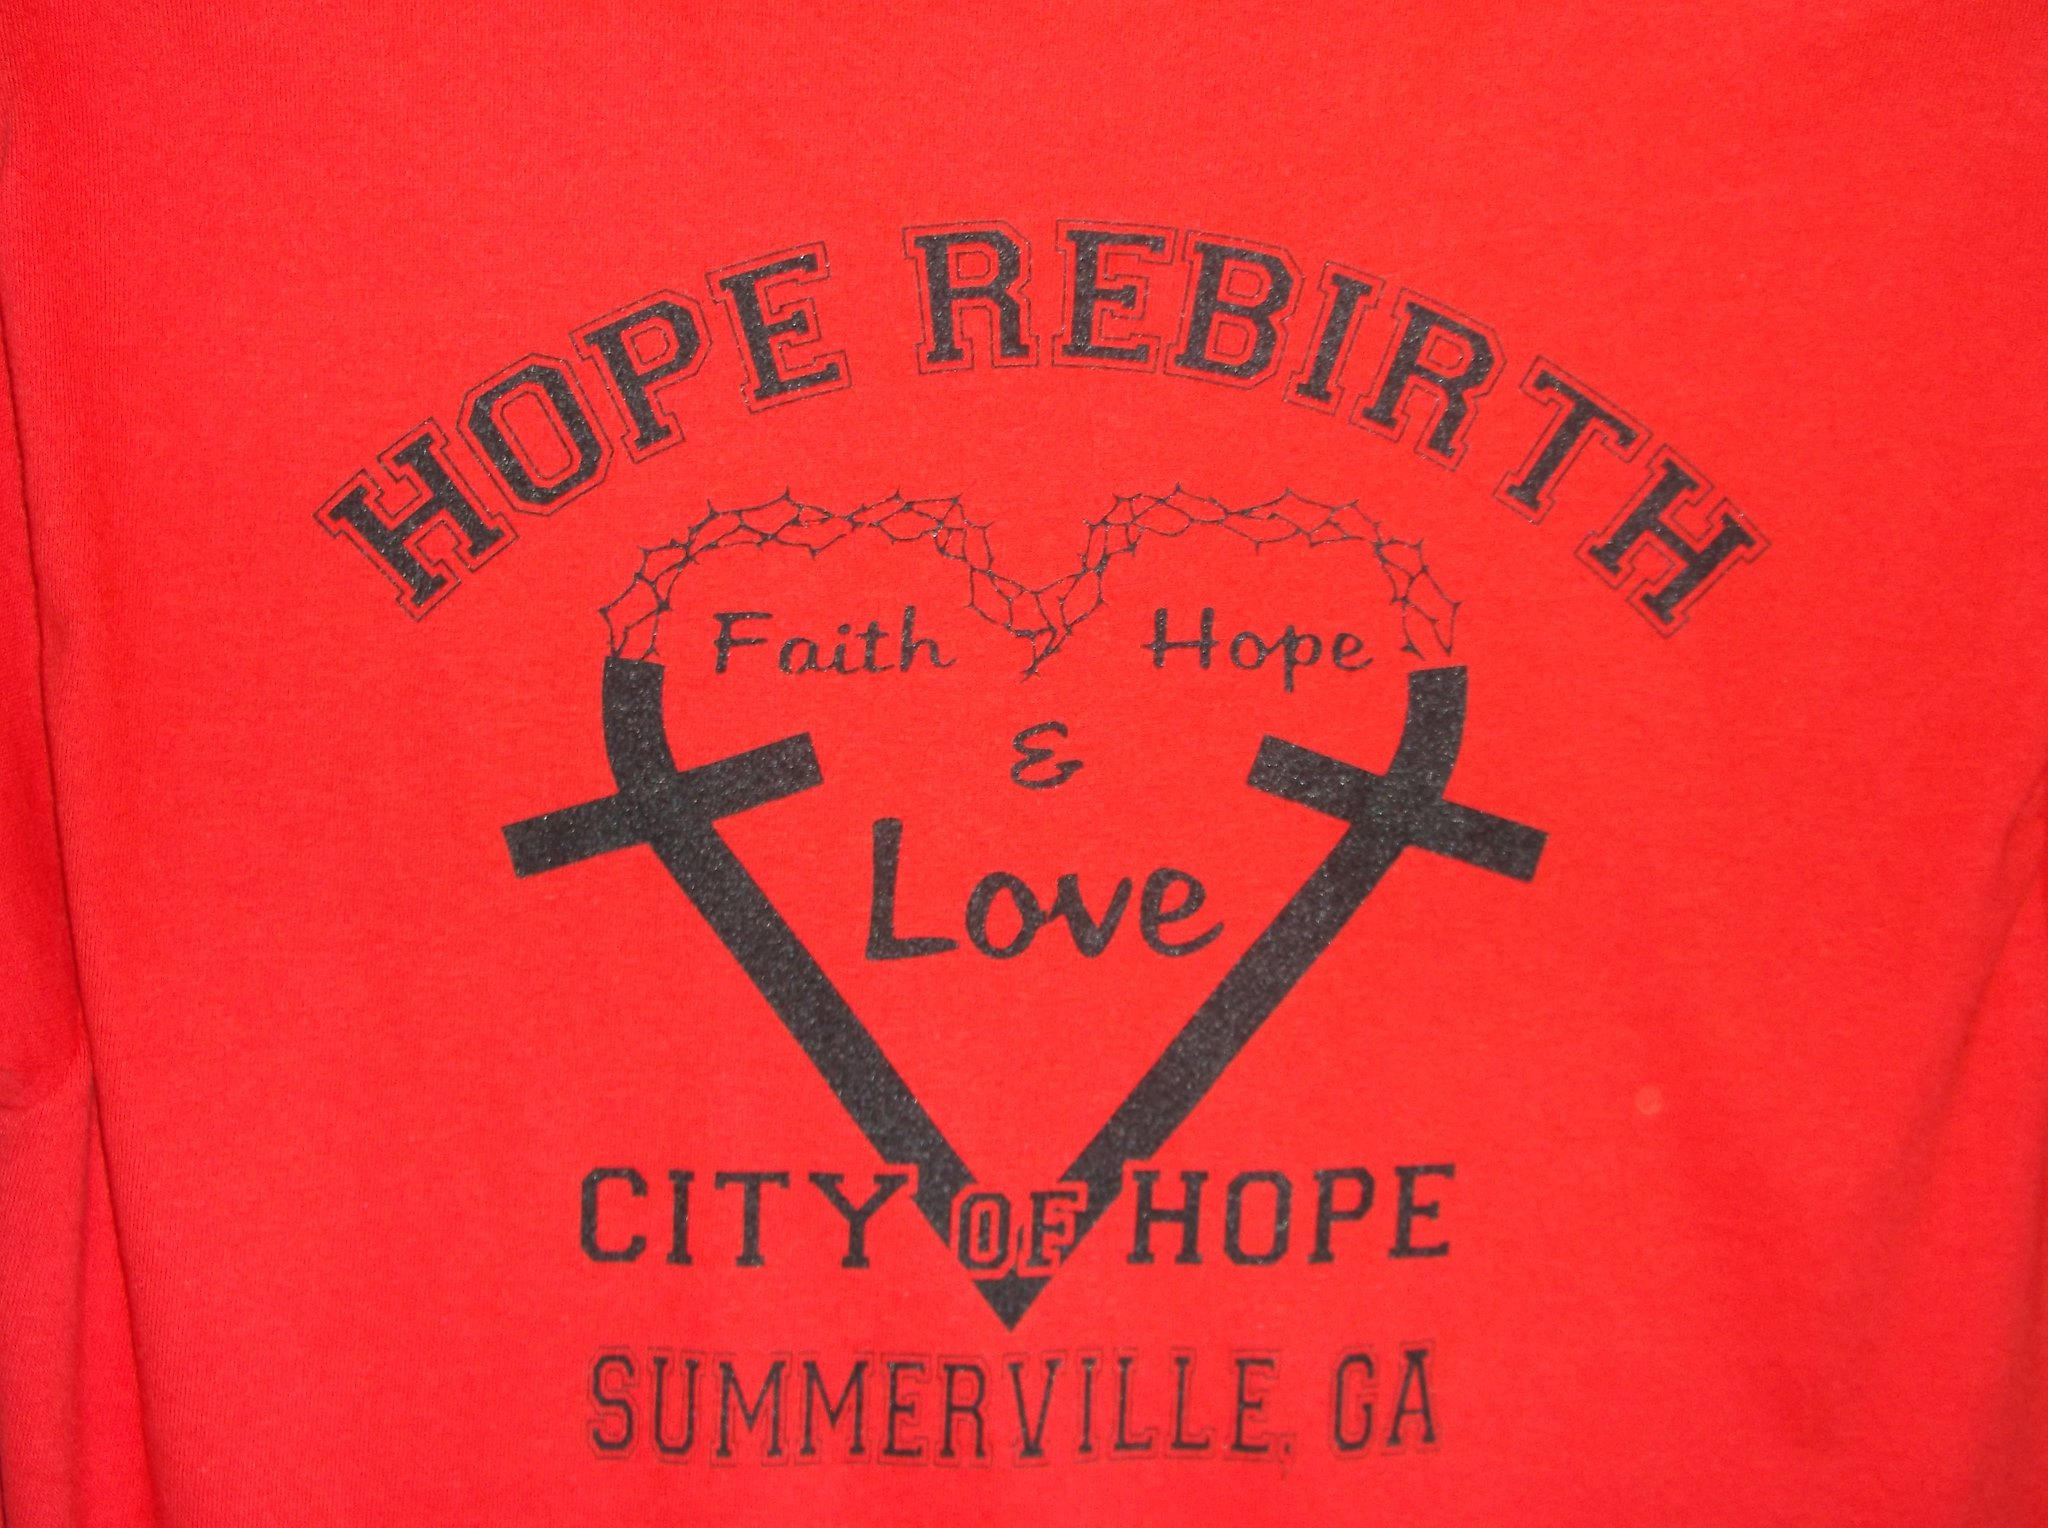 Hope Rebirth Homeless Shelter